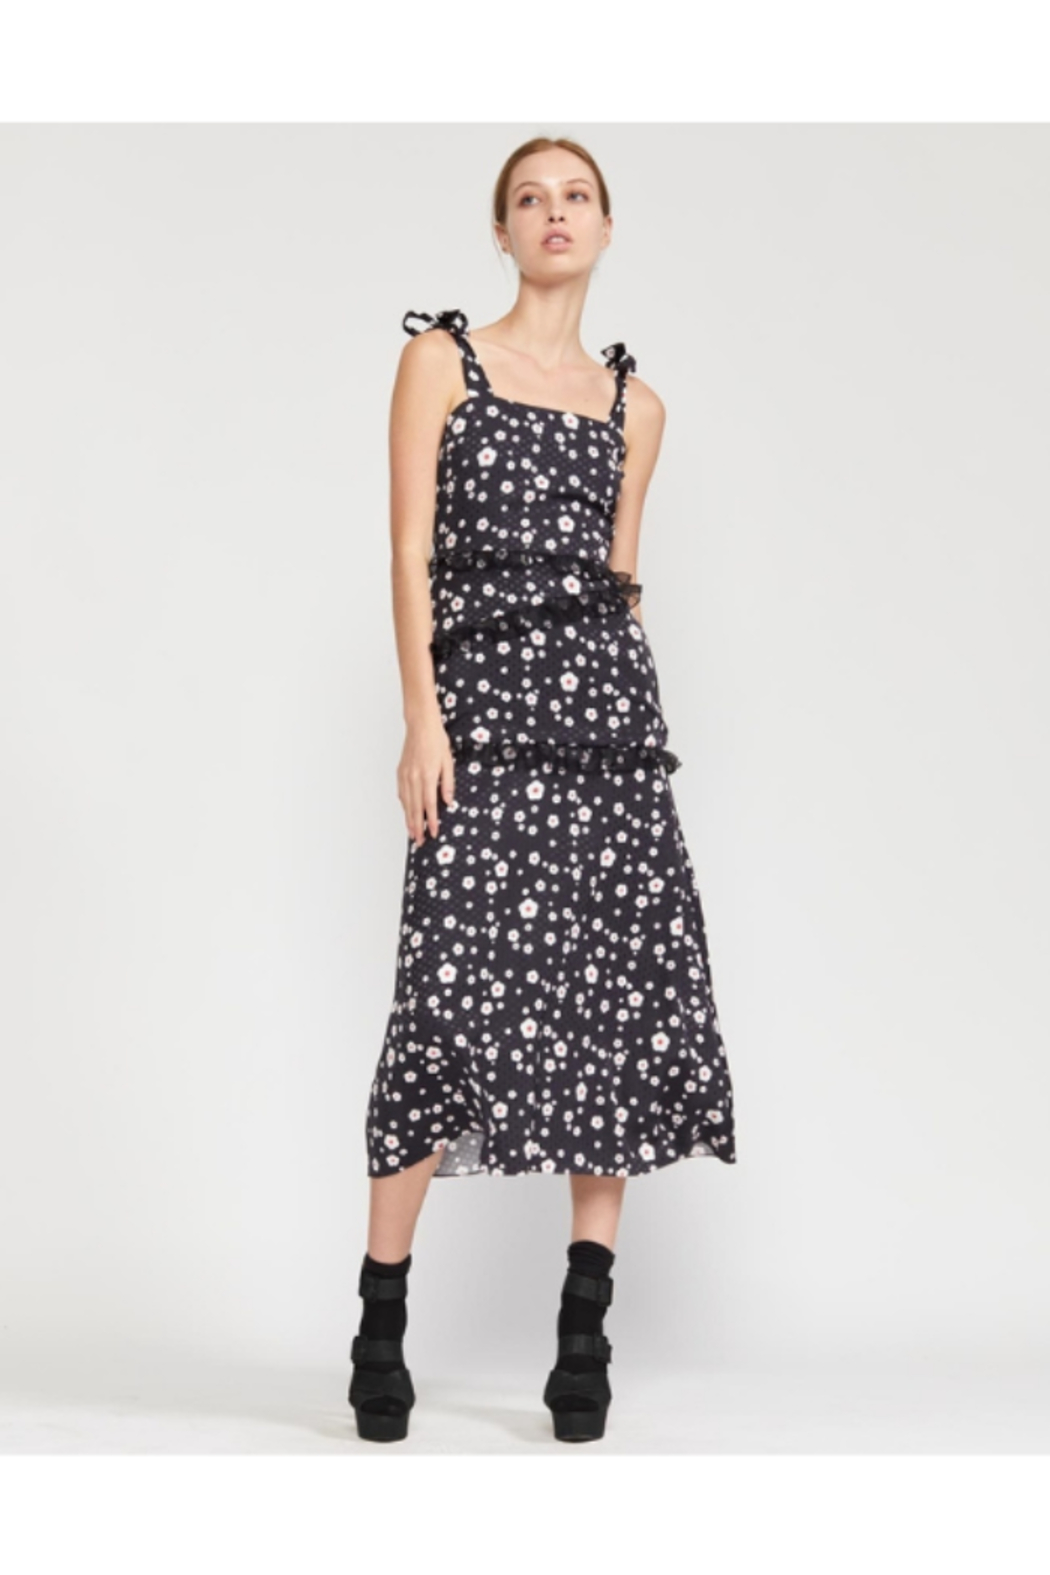 Cynthia Rowley Snow Daisy Tie Shoulder Fitted Dress - Main Image